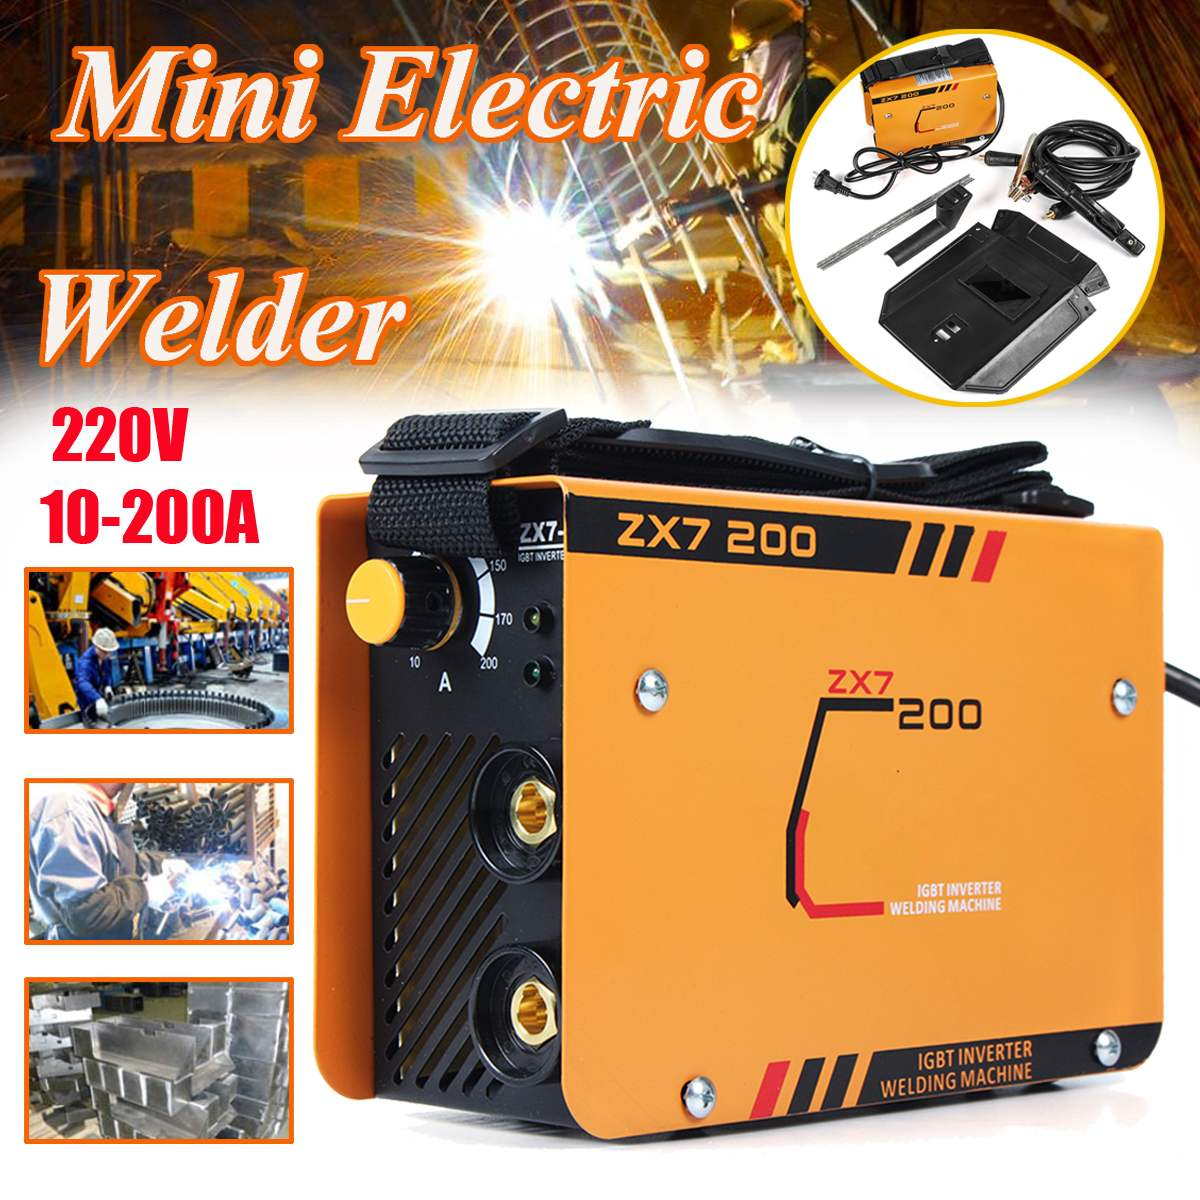 220V 10-200A Mini Electric Welding Machine ZX7-200MINI Arc Welder 2.5-3.2mm for Soldering and Electric Working Adjustable welder machine plasma cutter welder mask for welder machine